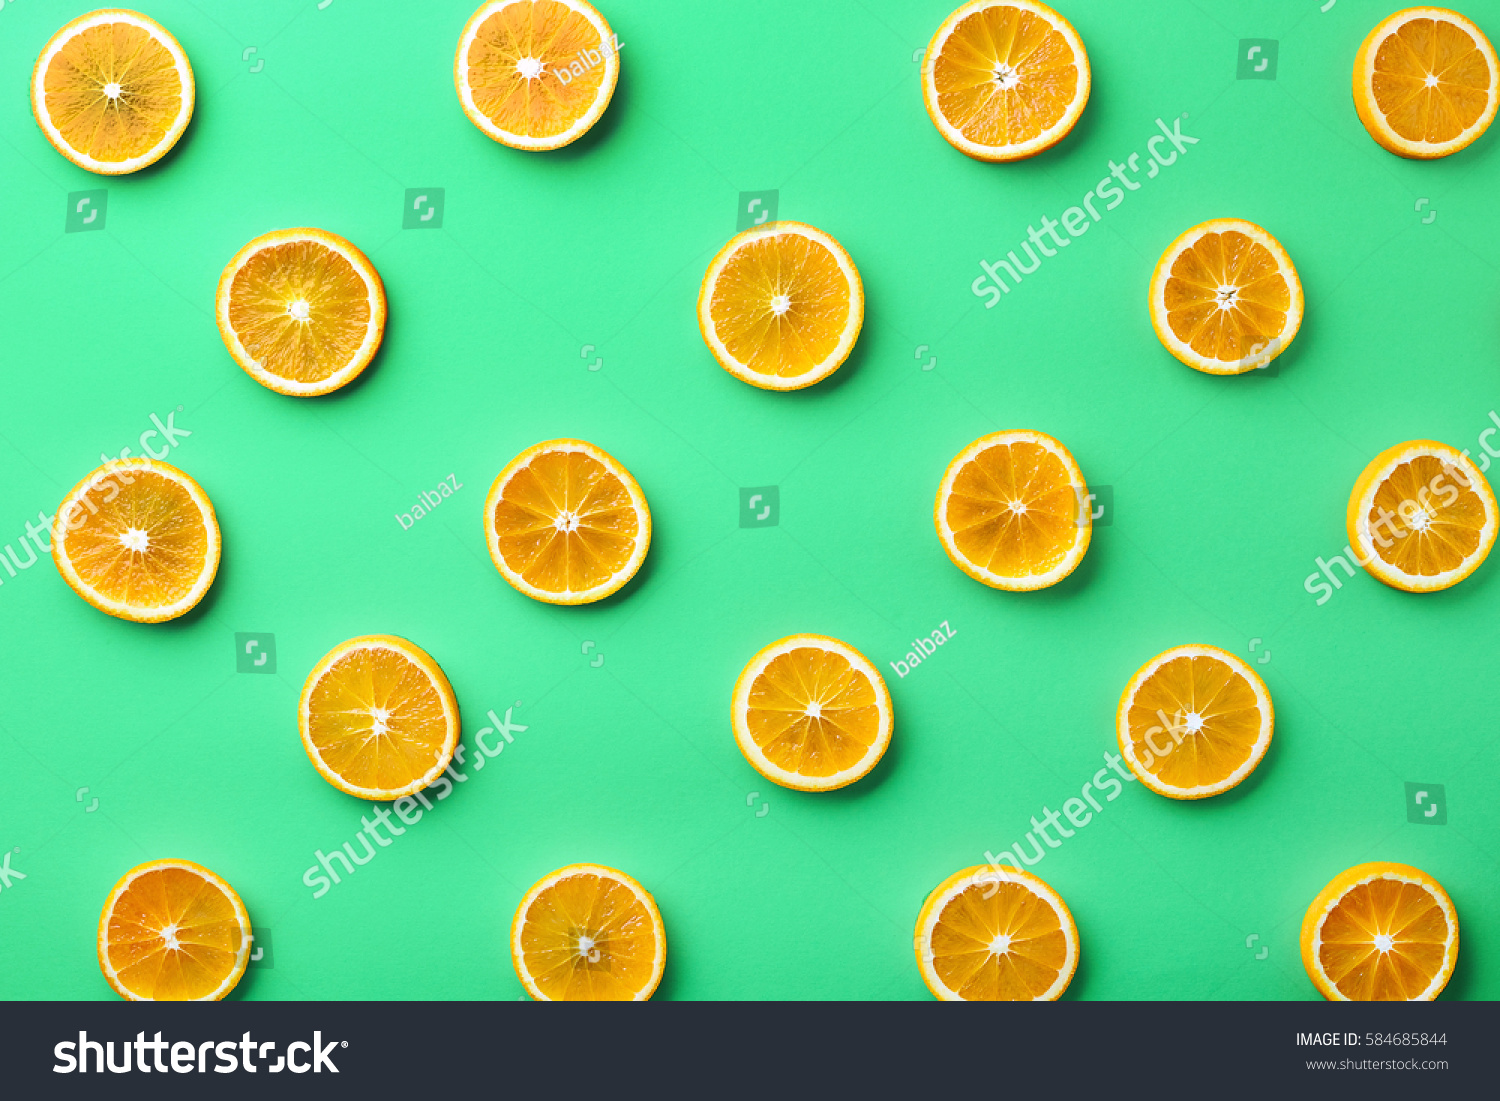 Colorful fruit pattern of fresh orange slices on green background. From top view